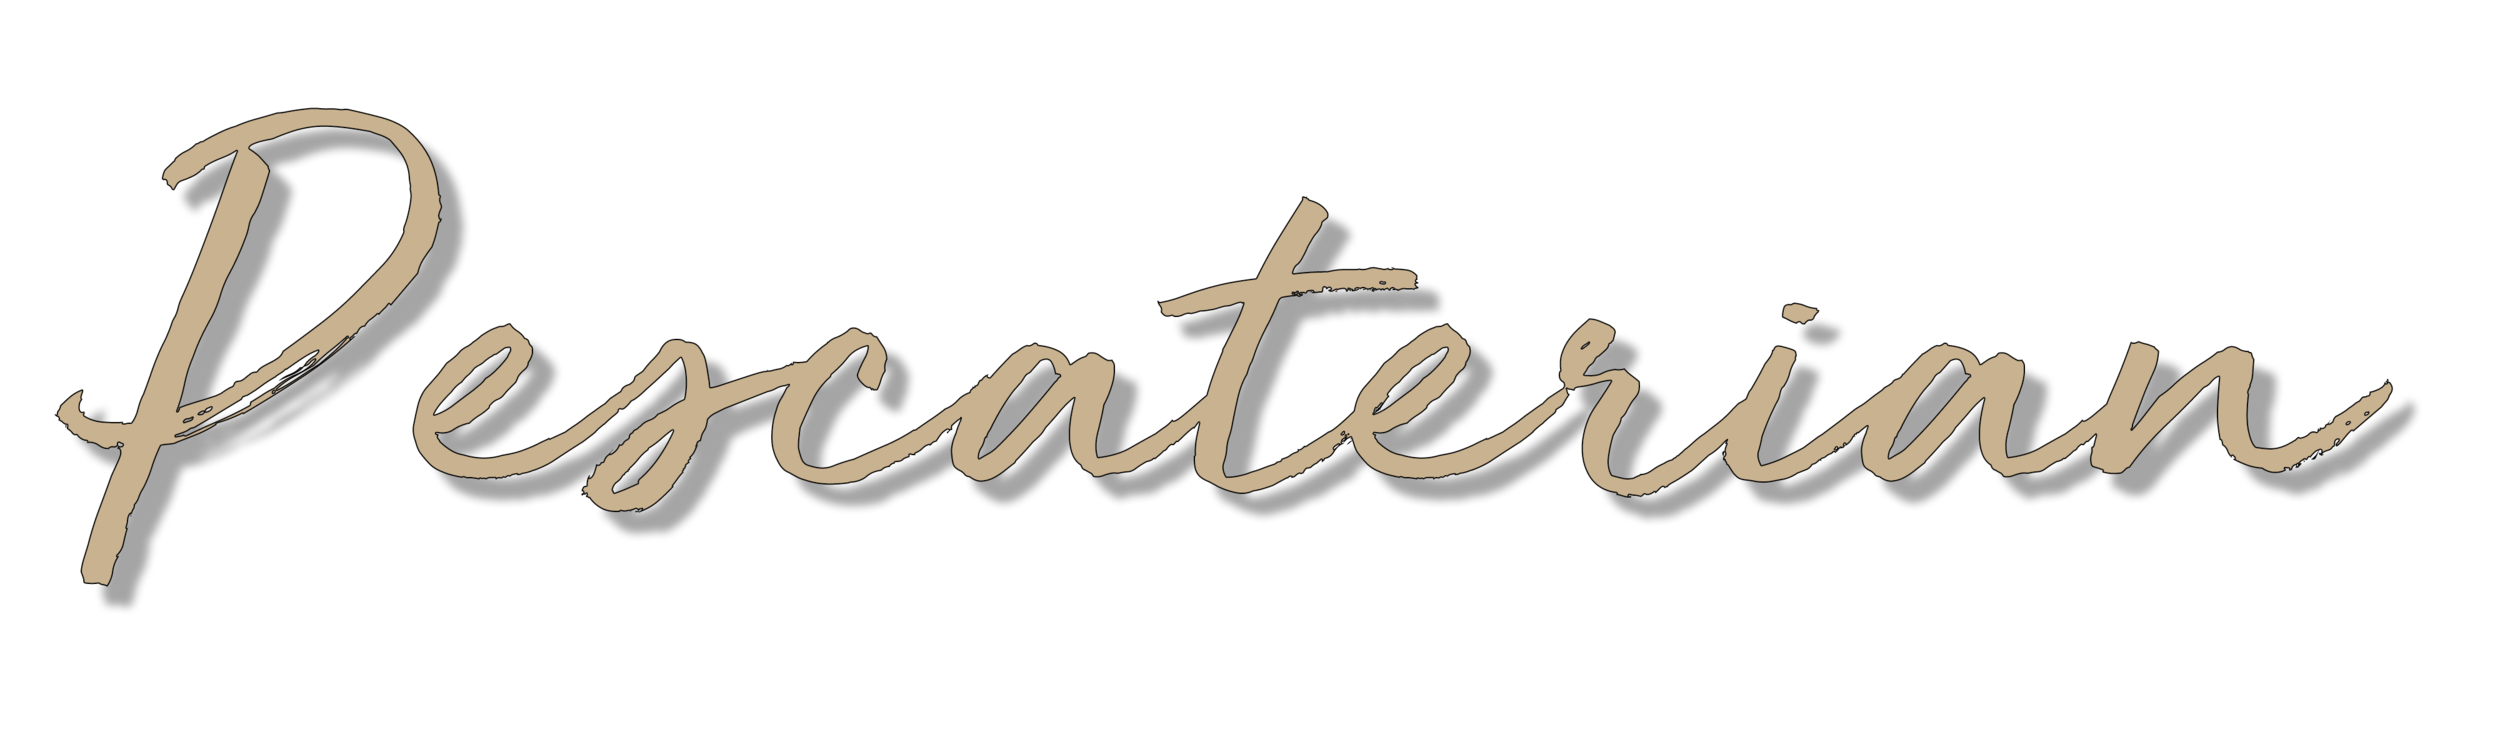 Pescaterian header.png